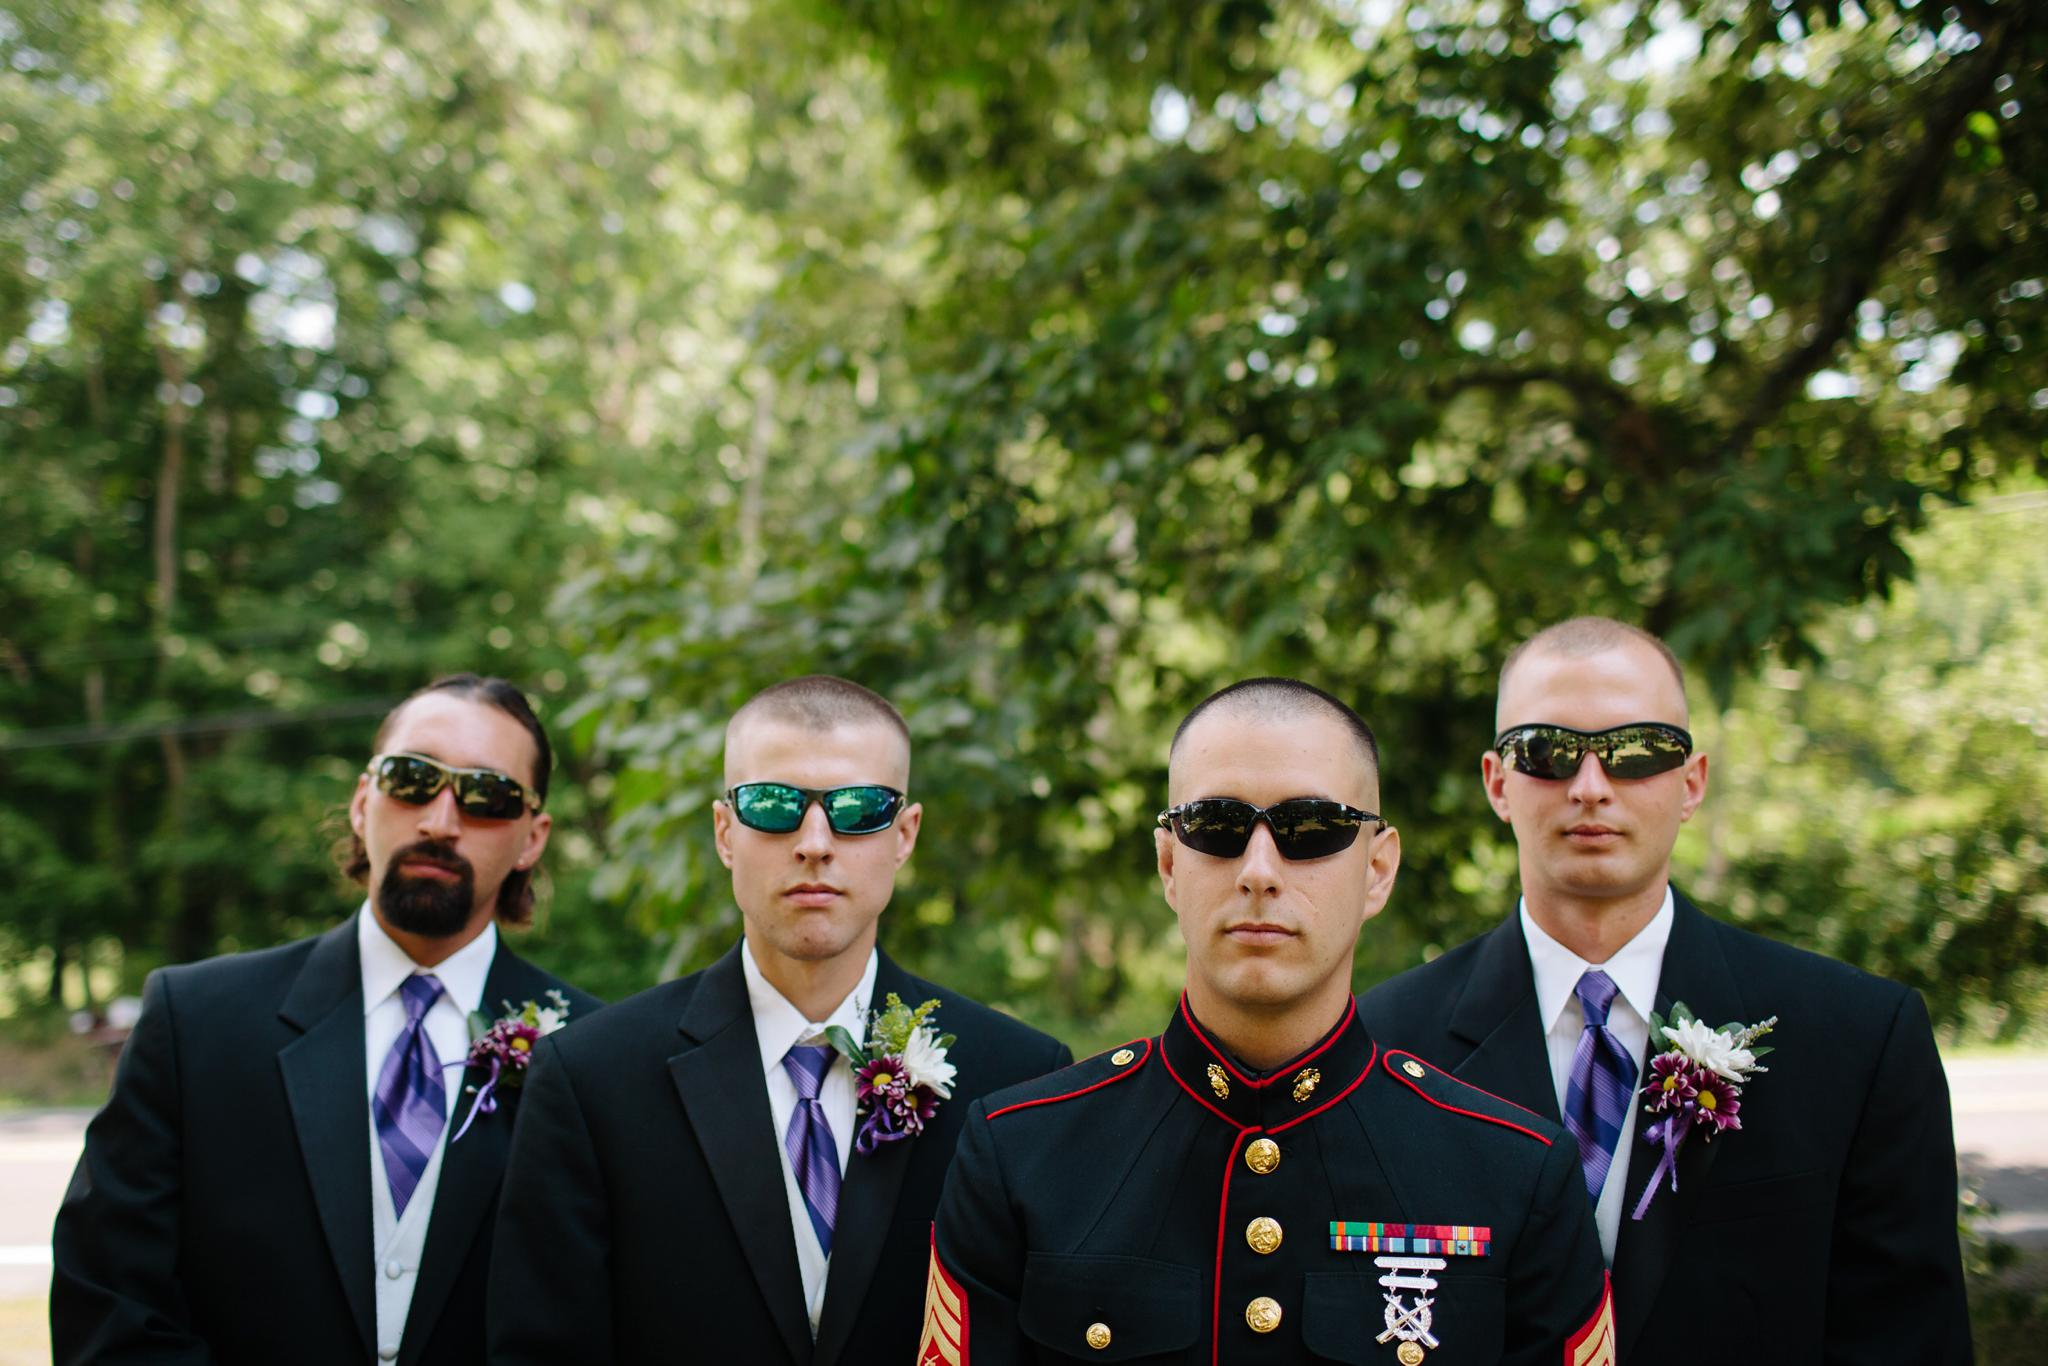 dotti_lou_grove_wedding_tunkahnnock_pa_wedding_photographer_military_marine_corps_2354.jpg